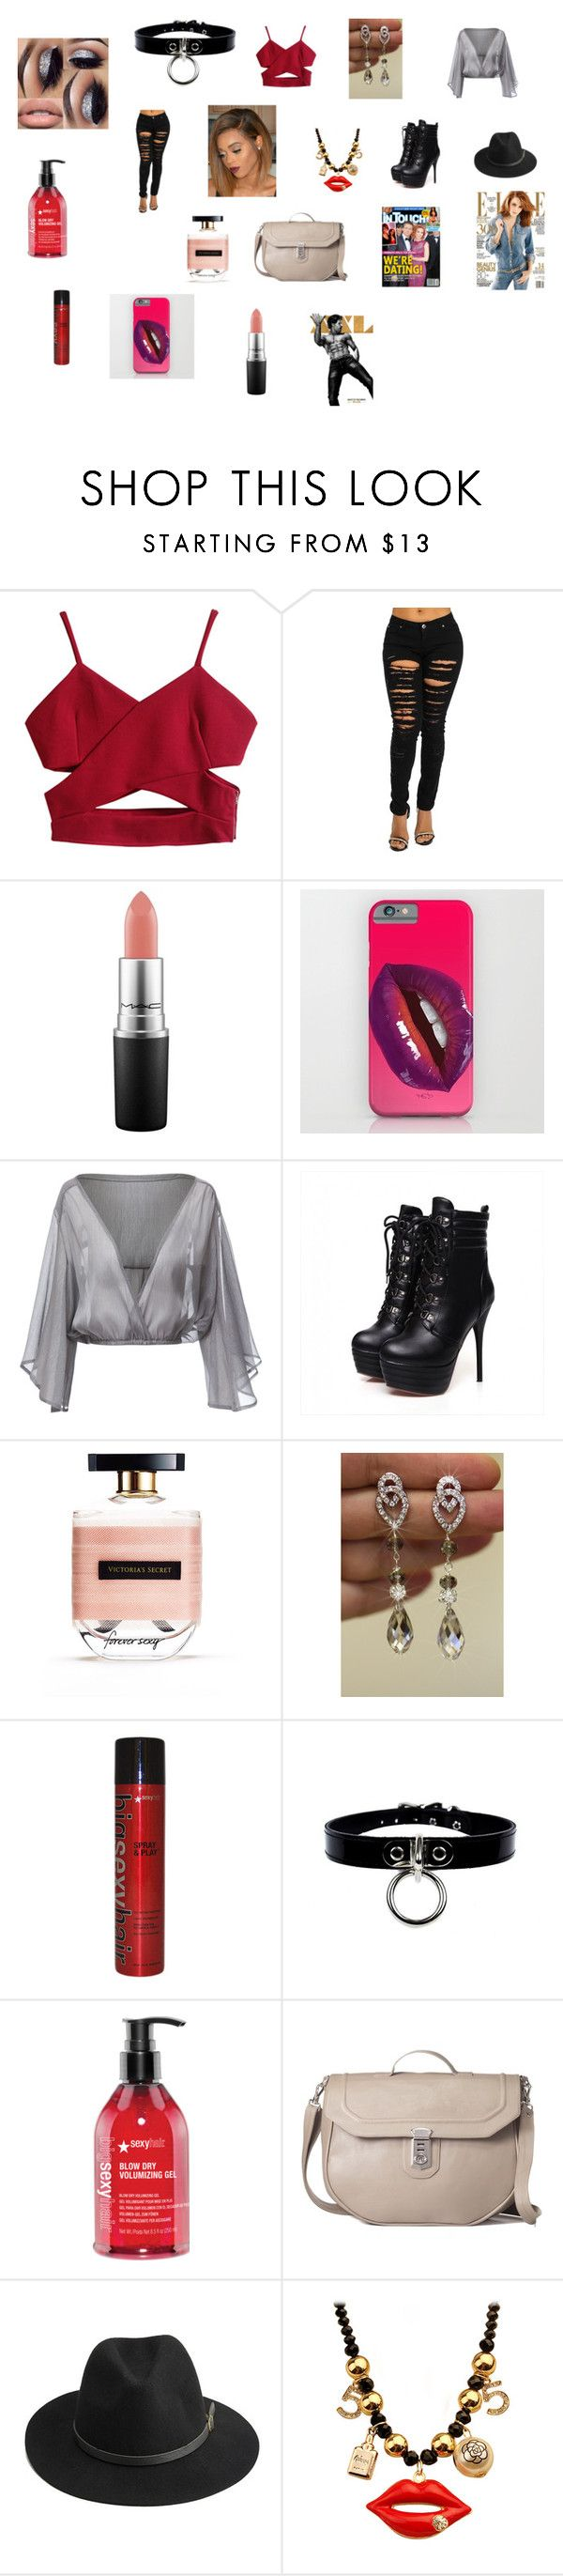 """""""Untitled #3"""" by sarah-blevins on Polyvore featuring MAC Cosmetics, Victoria's Secret, Sexy Hair, Colle'cte, BeckSöndergaard, Emma Watson, tatum, hotstuff and sexay"""